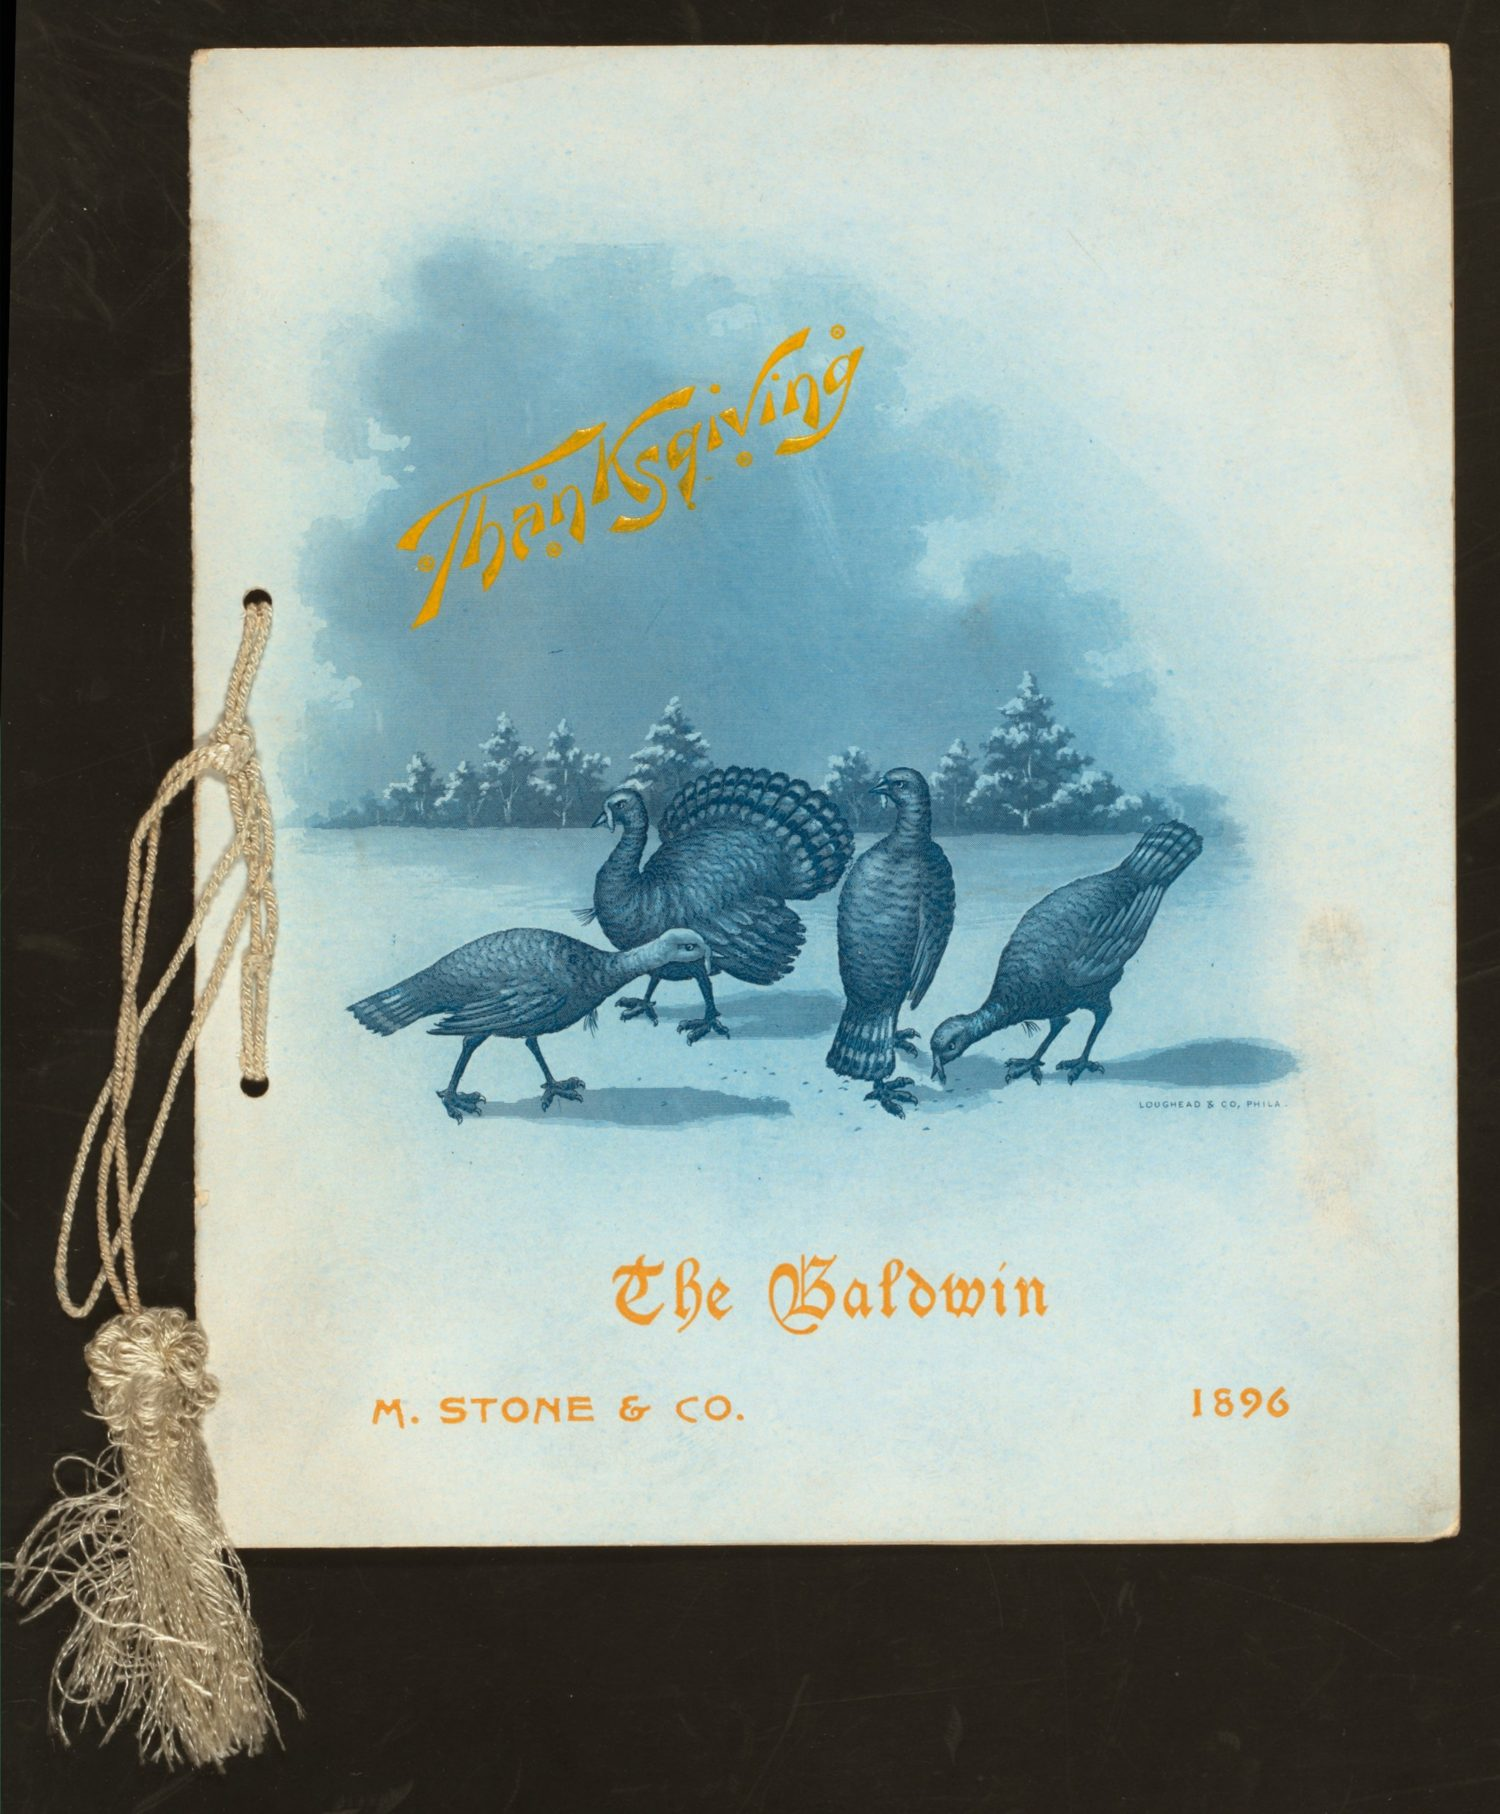 "Rare Book Division, The New York Public Library. ""THANKSGIVING DAY DINNER [held by] BALDWIN [at] ""SAN FRANCISCO, CA;"" (HOTEL)"" The New York Public Library Digital Collections. 1896. http://digitalcollections.nypl.org/items/510d47db-2bdf-a3d9-e040-e00a18064a99"